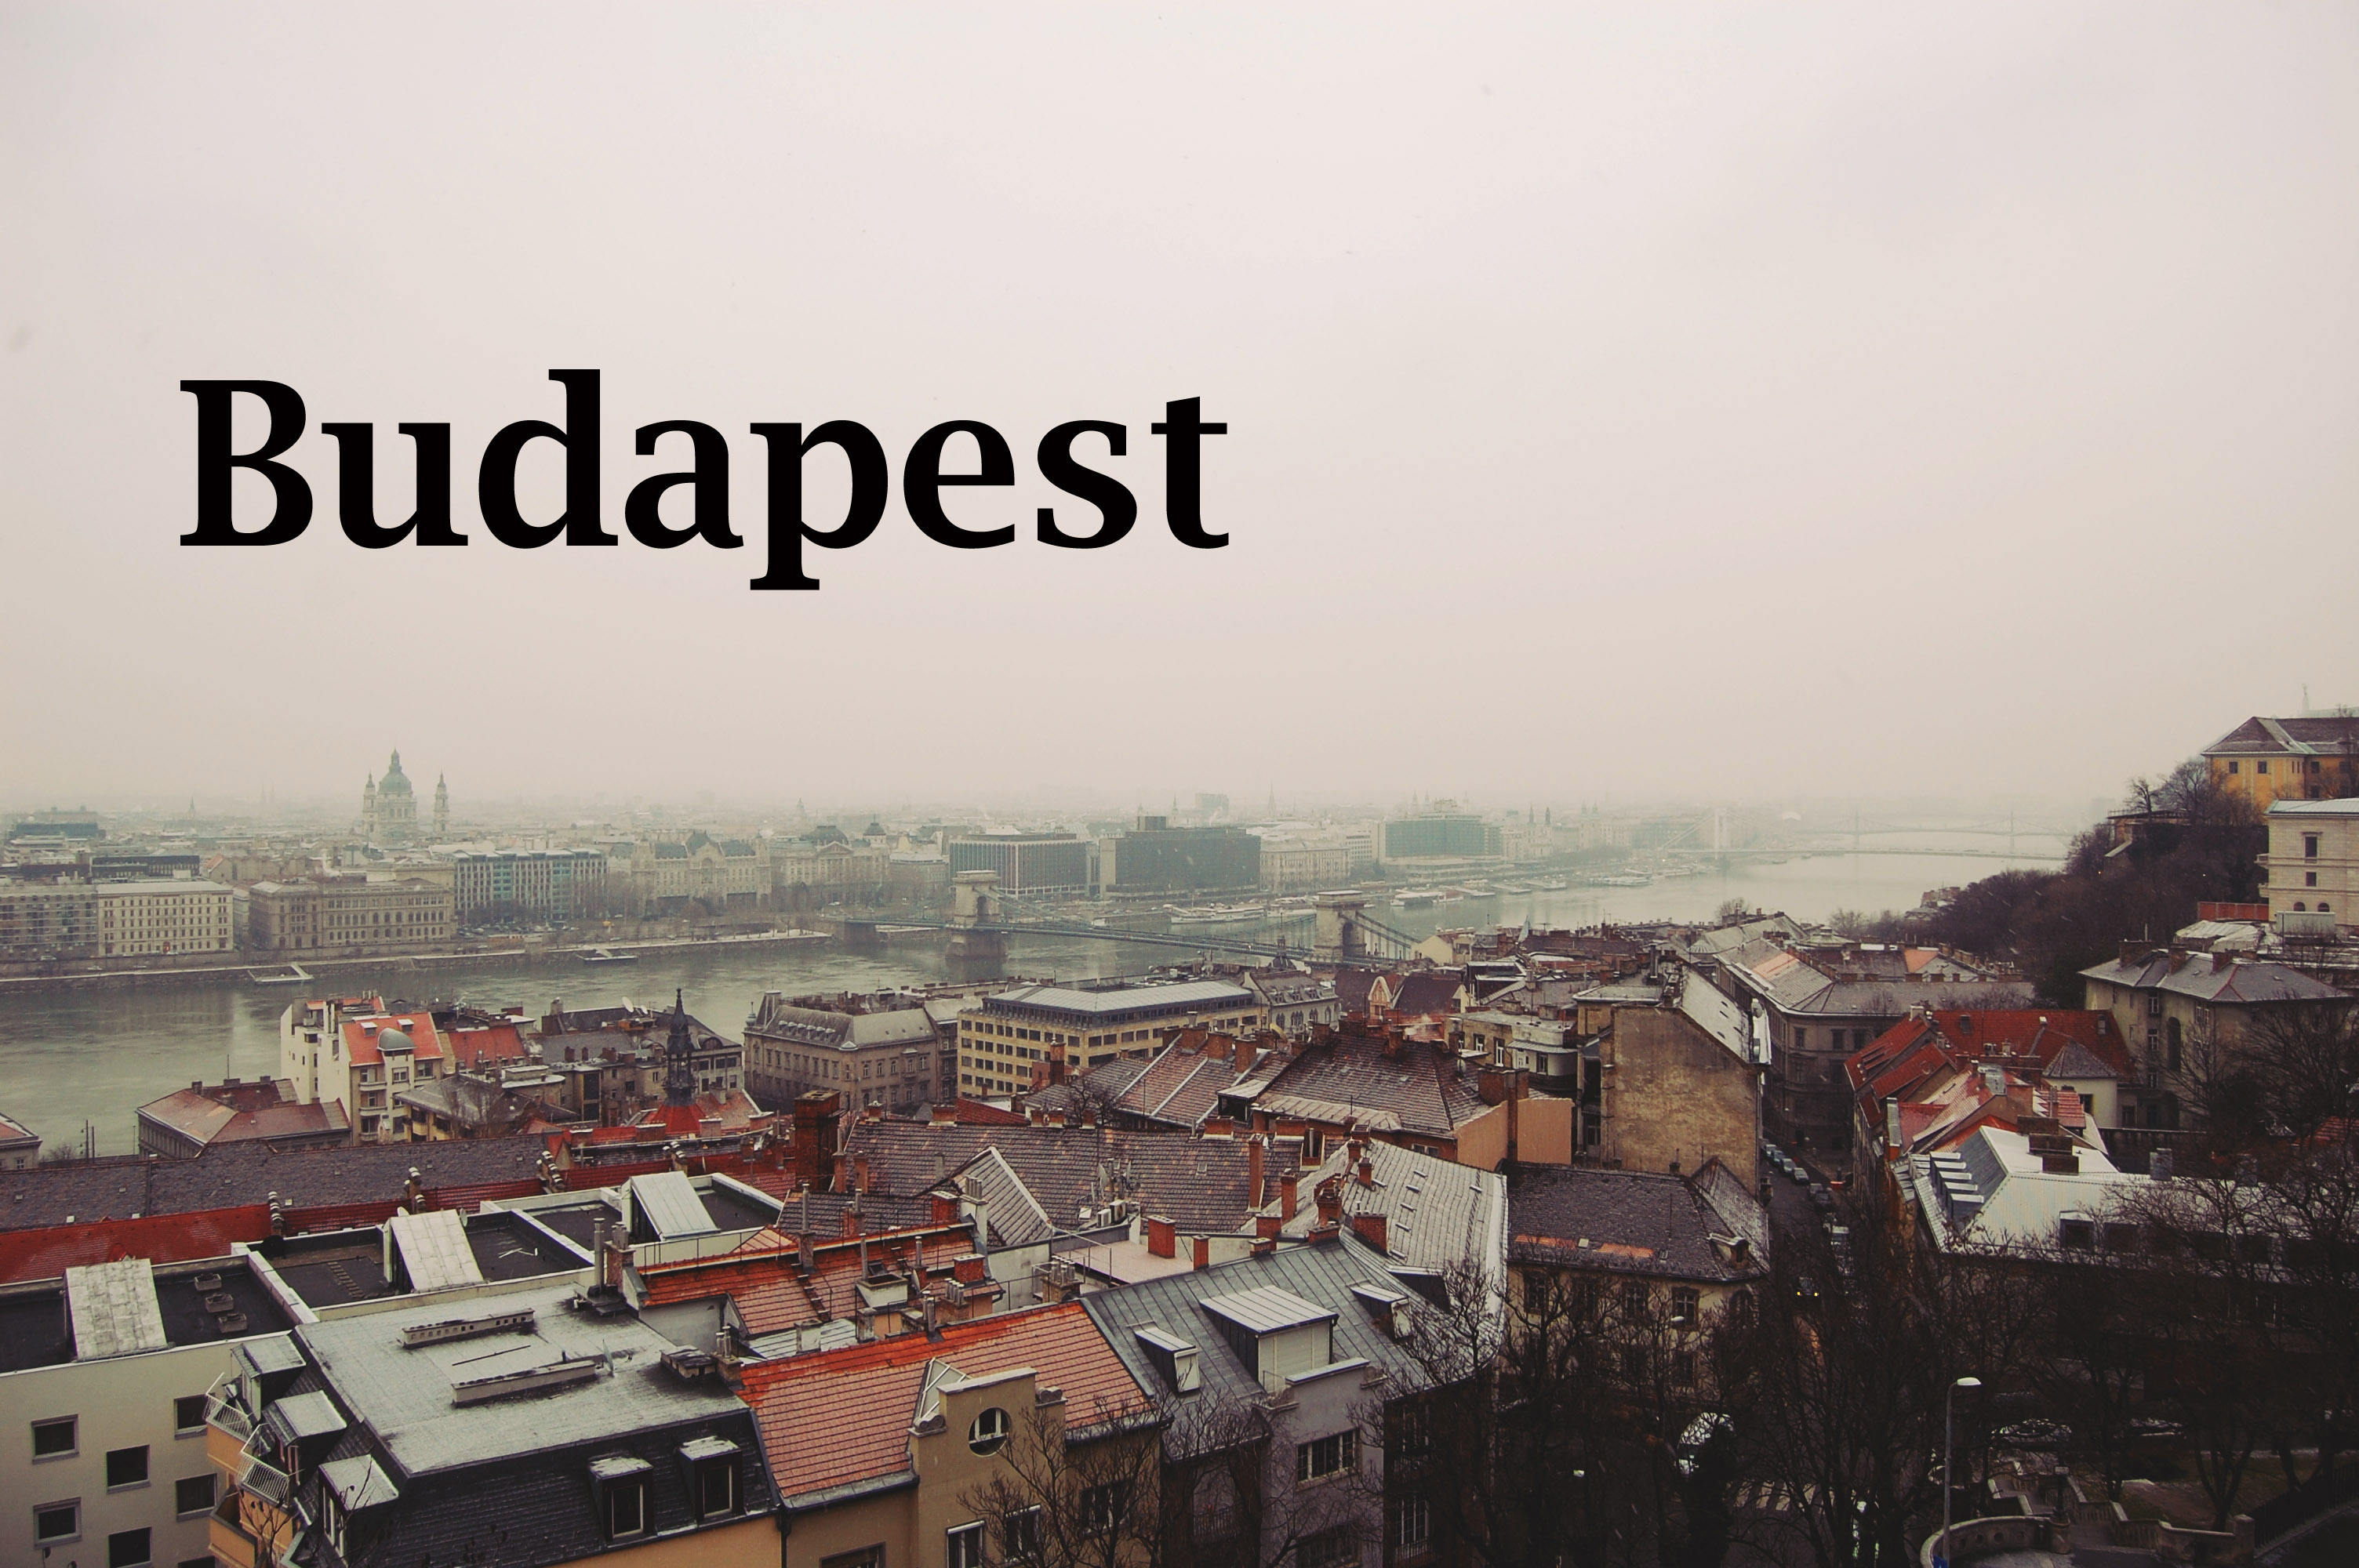 Budapest and its people